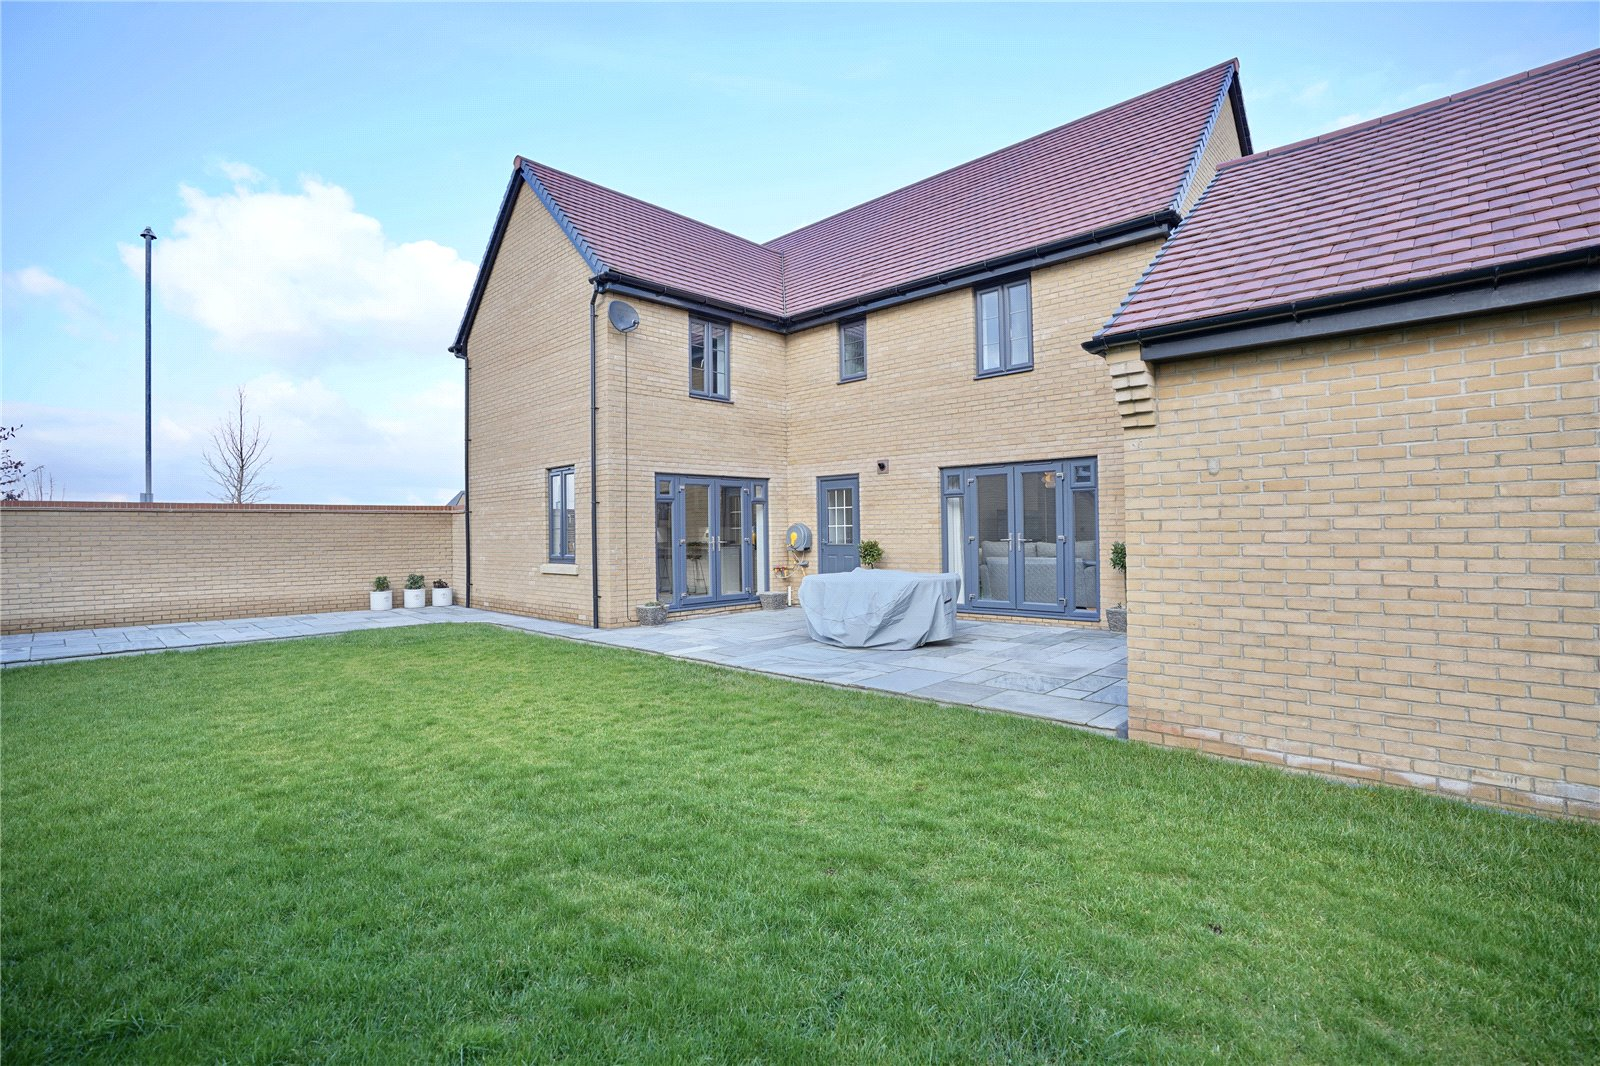 5 bed house for sale in Godmanchester, PE29 2NG 3